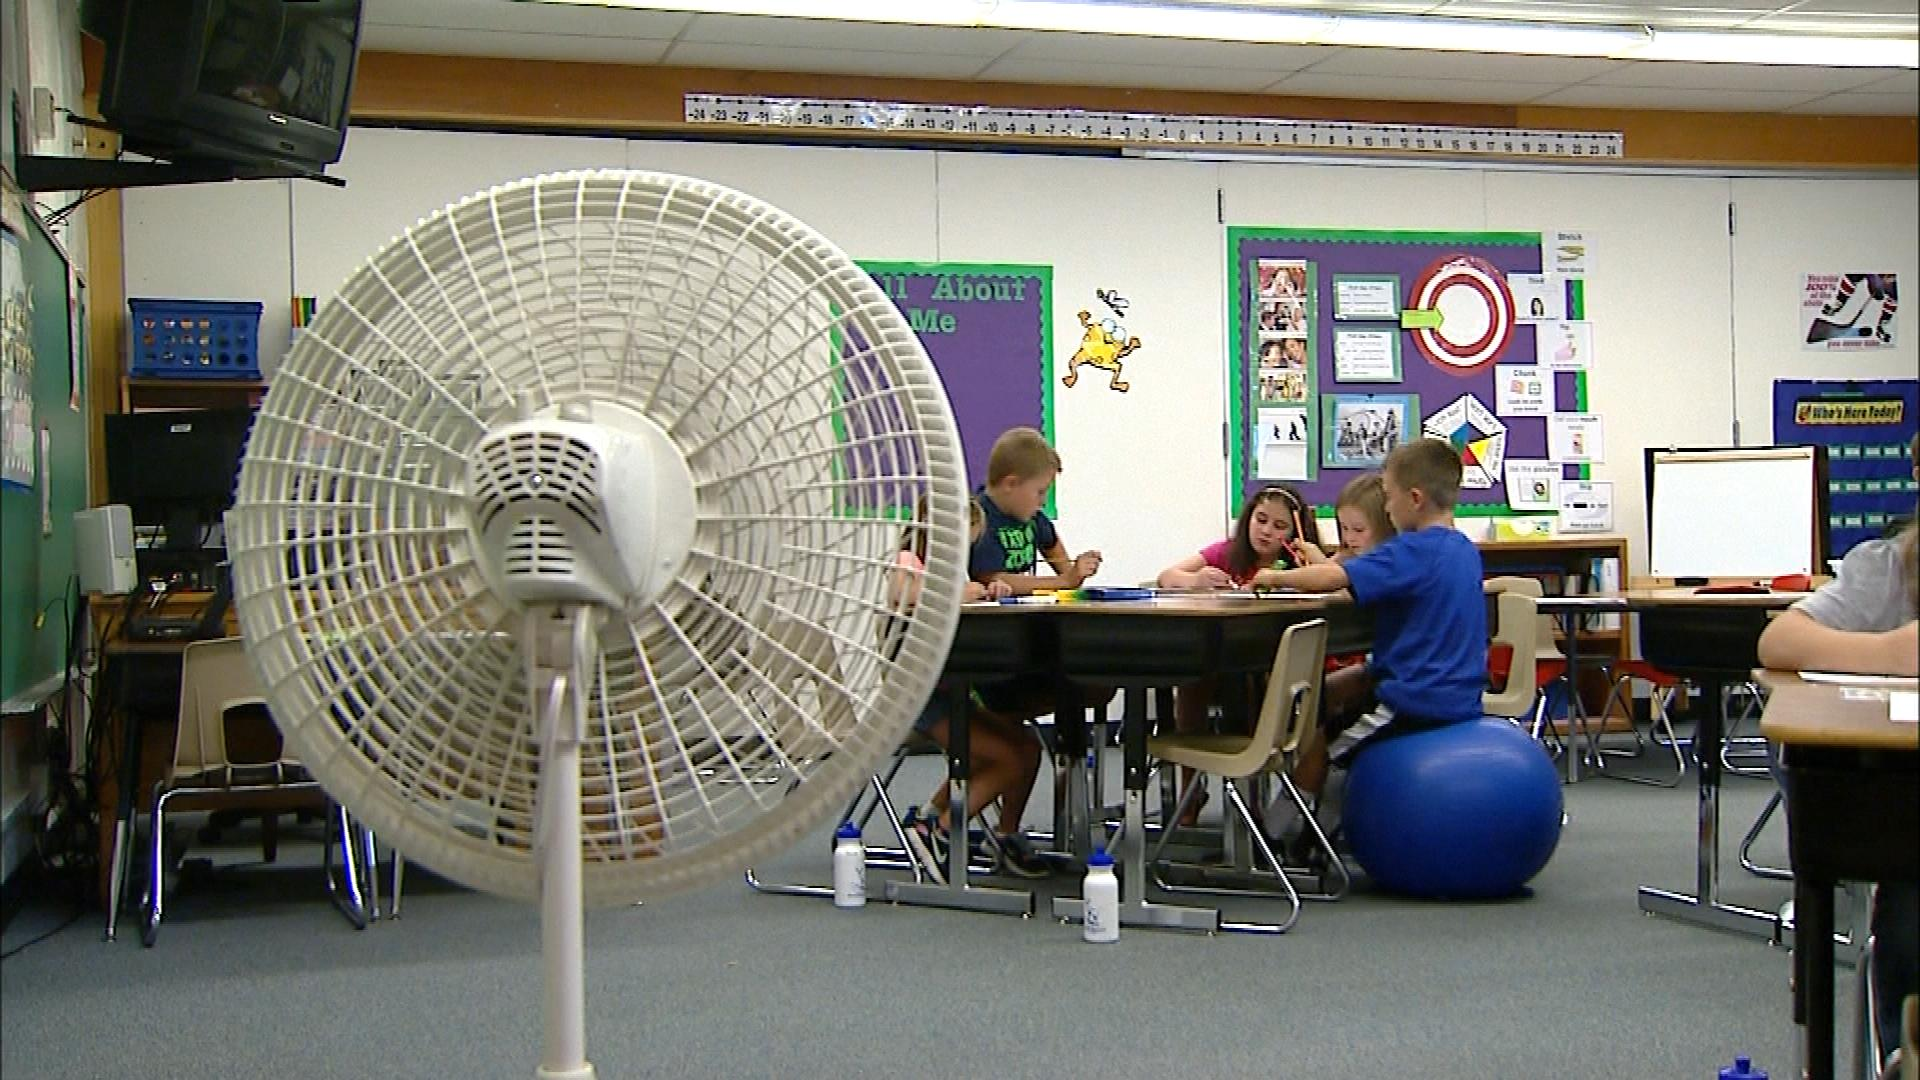 Air conditioning out at a school in Fort Collins (credit: CBS)